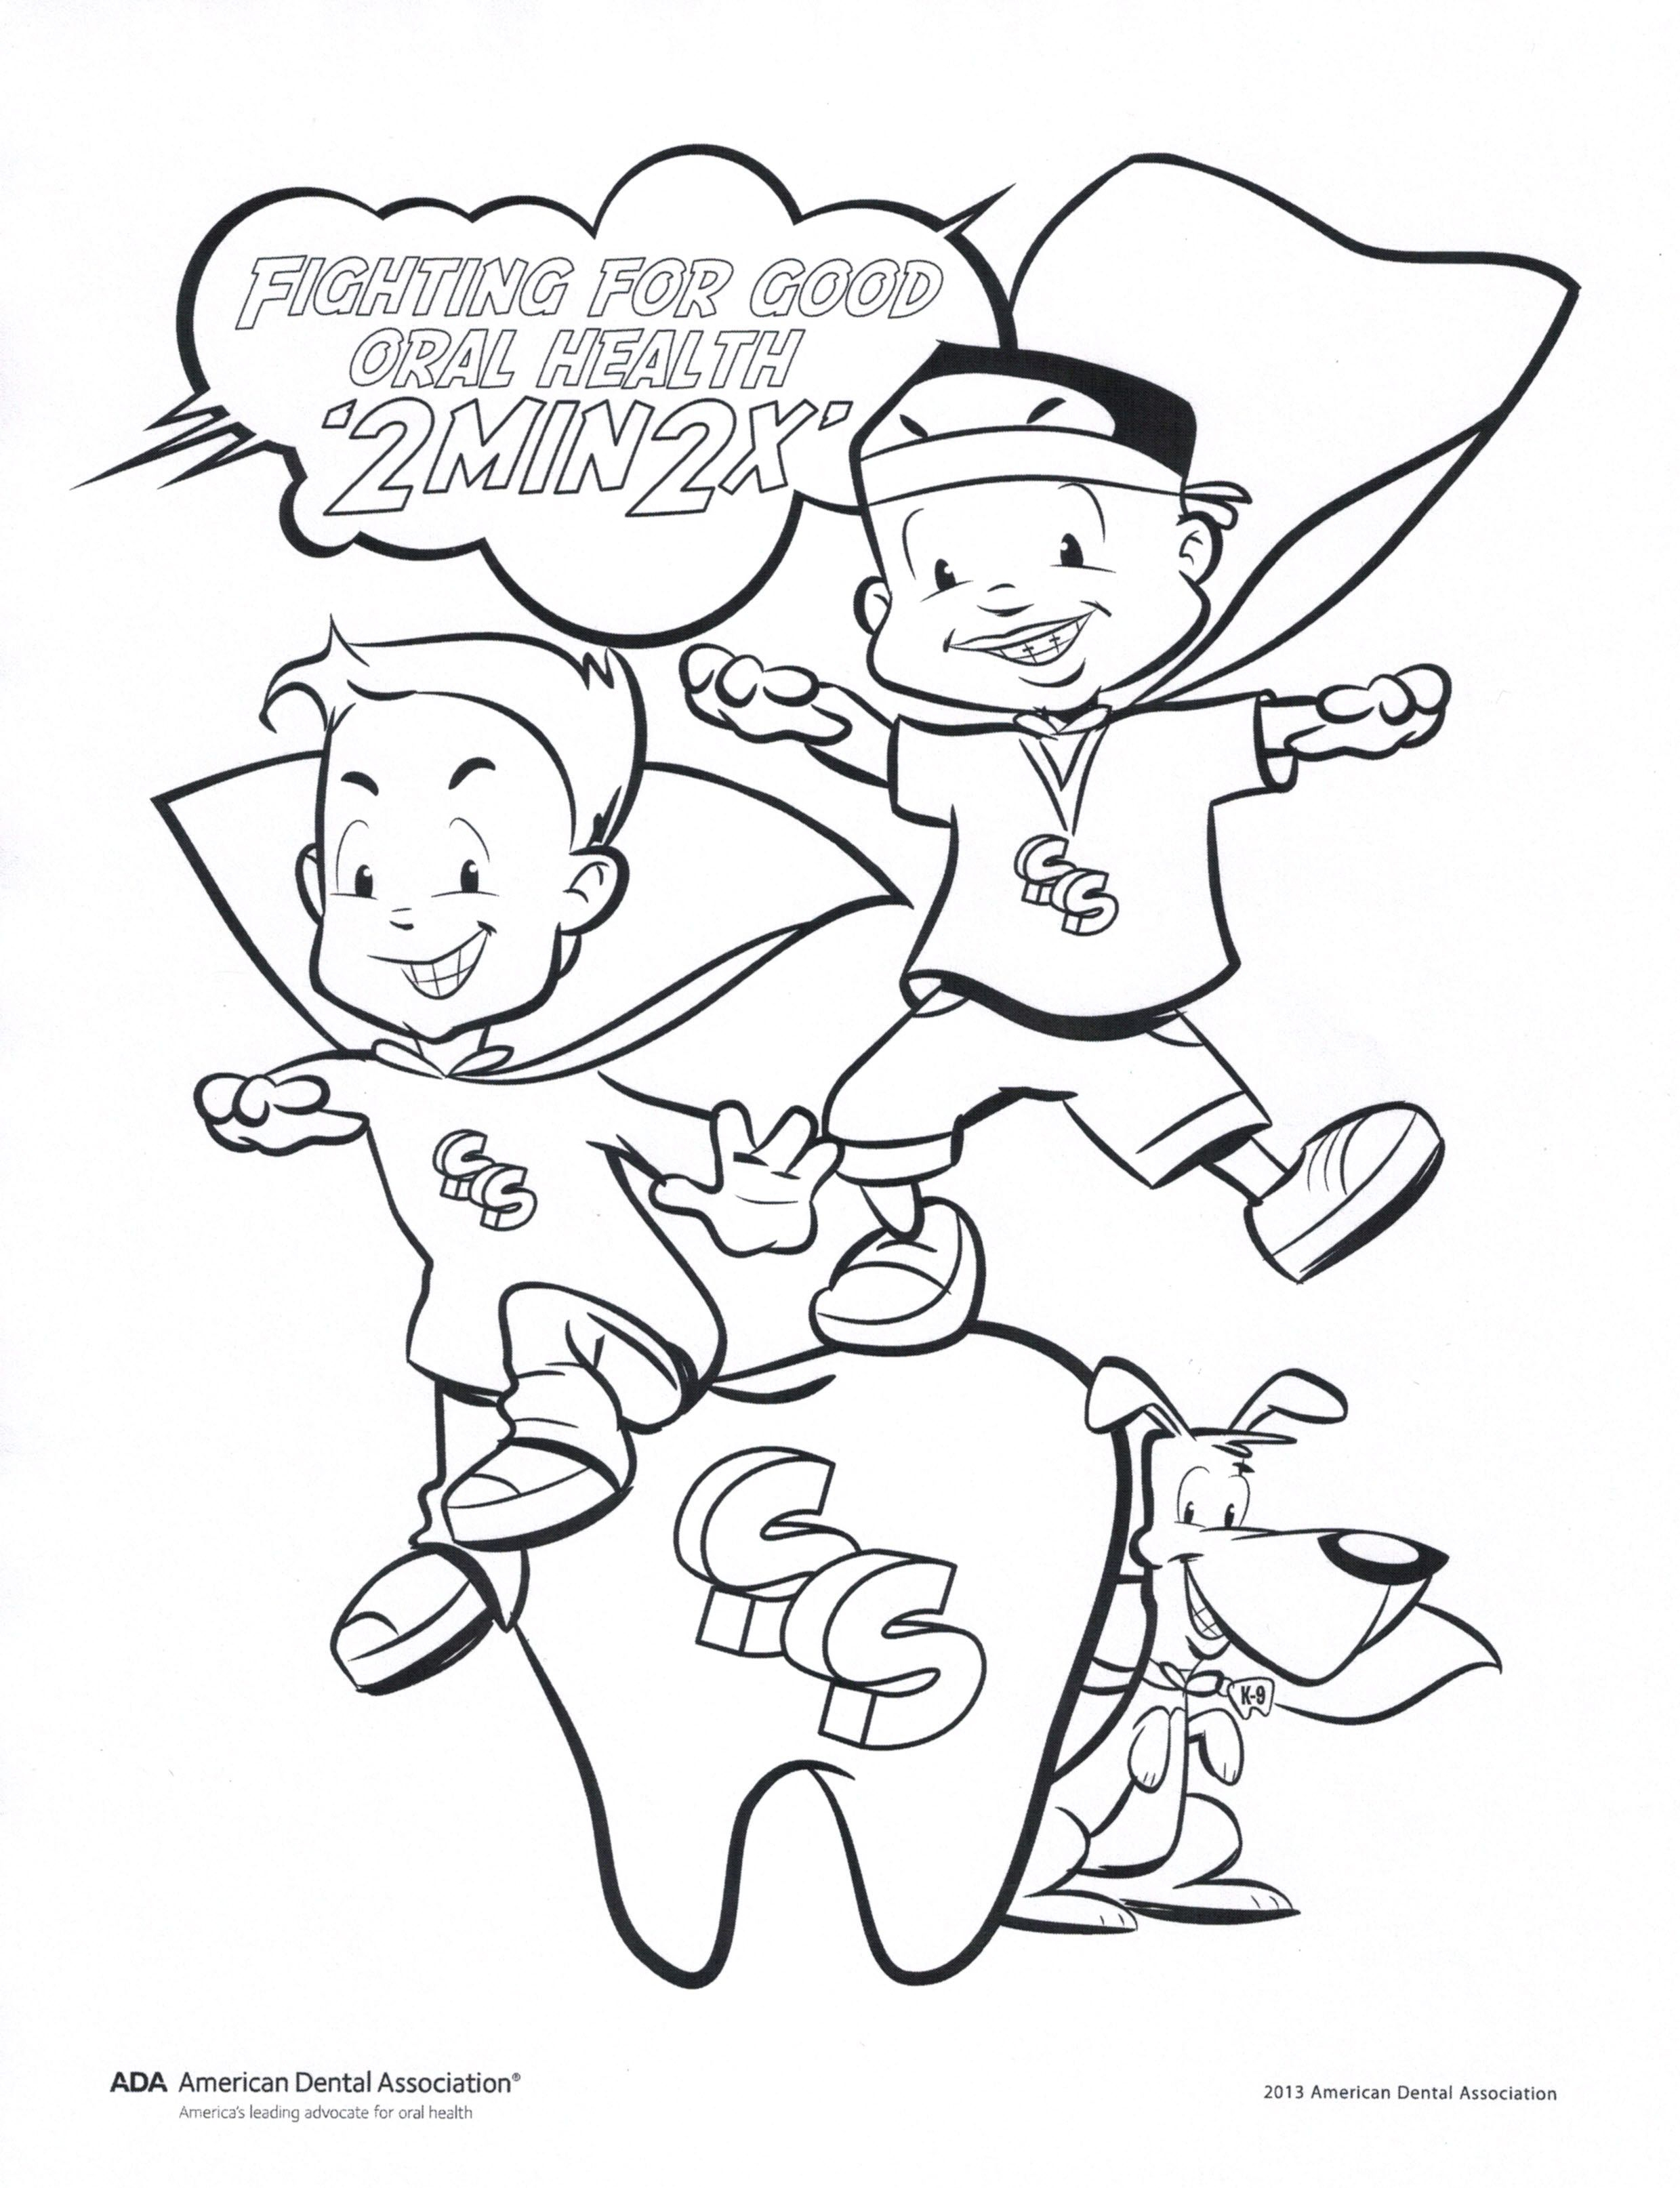 coloring pages dental health month Download-Fight For Good Oral Health Coloring Page 4-s